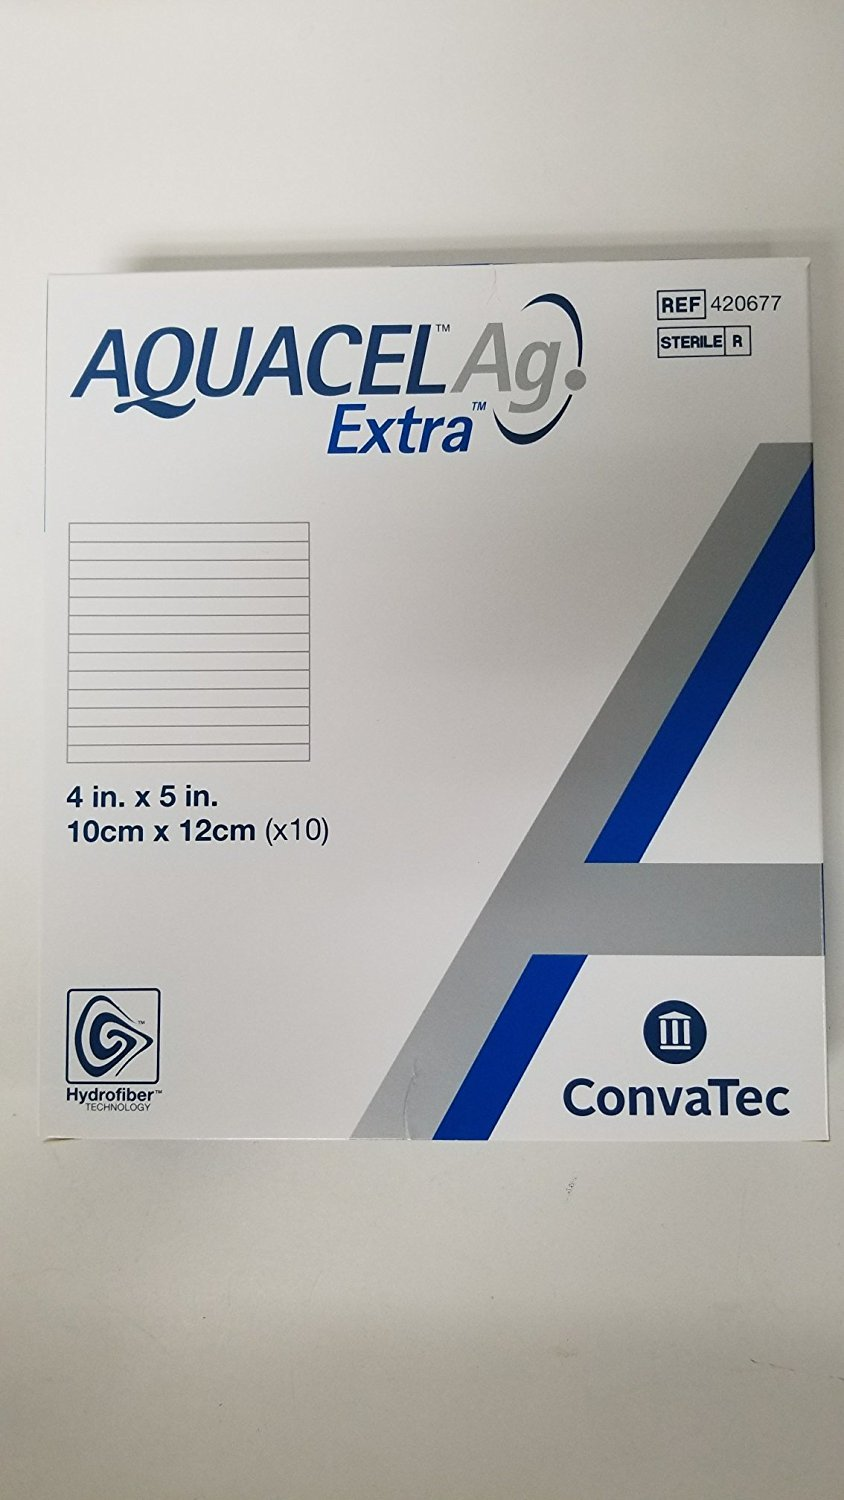 Buy Aquacel Ag Extra 4 X 5 Box Of 10 Dressings Online At Low Prices Urgotul Silver In India